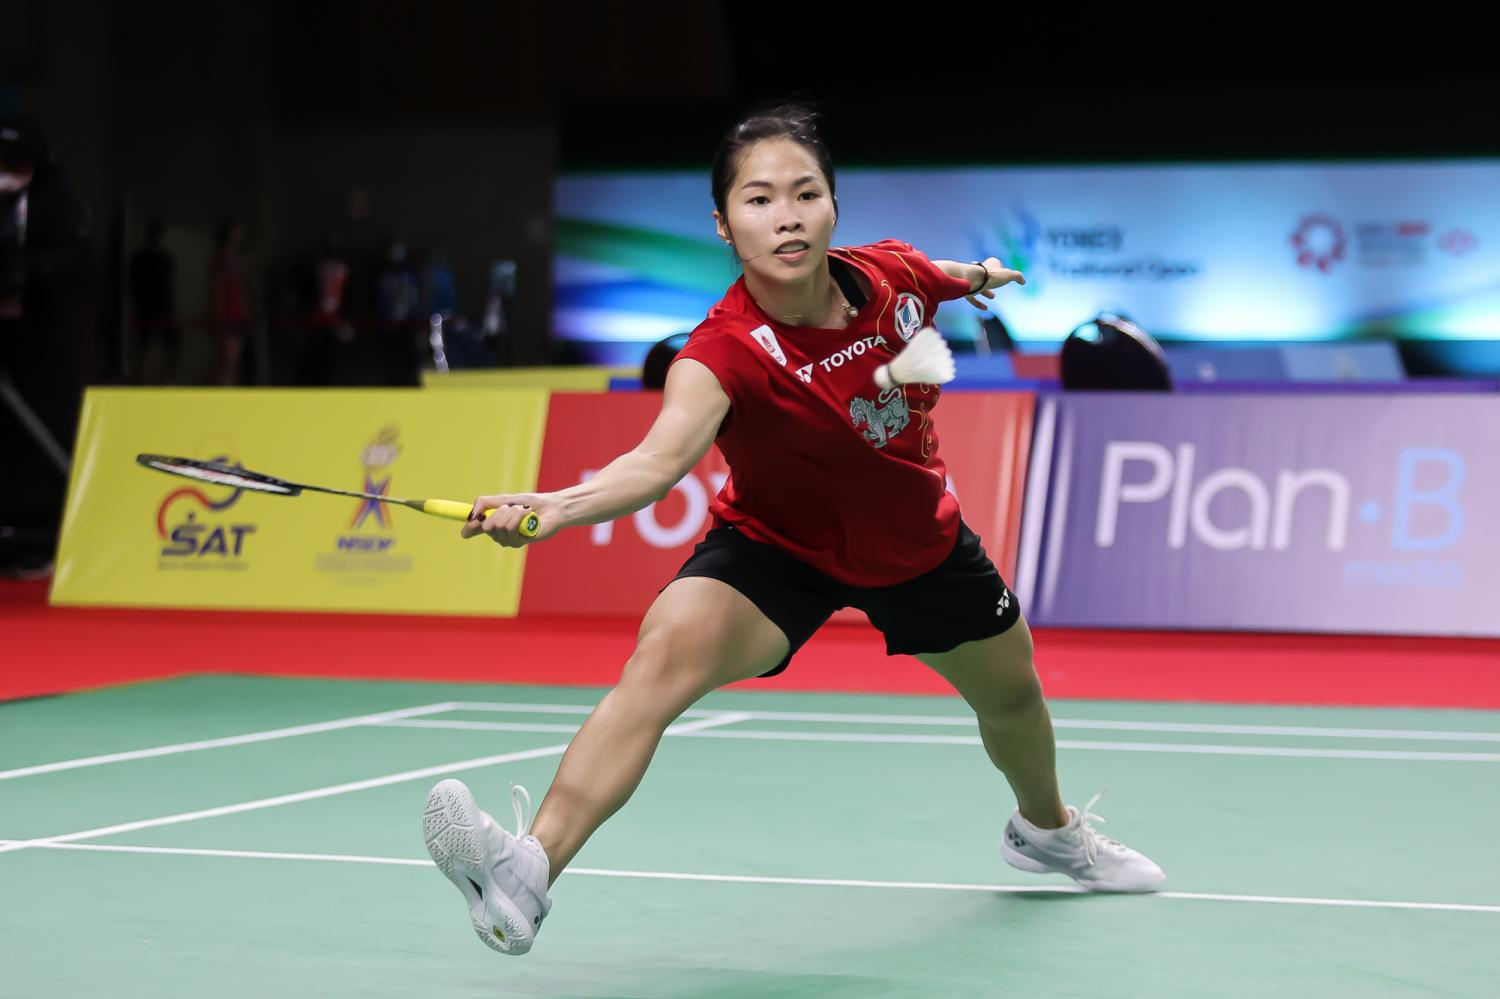 Ratchanok Intanon plays a shot during her first round match against Yeo Jia Min.